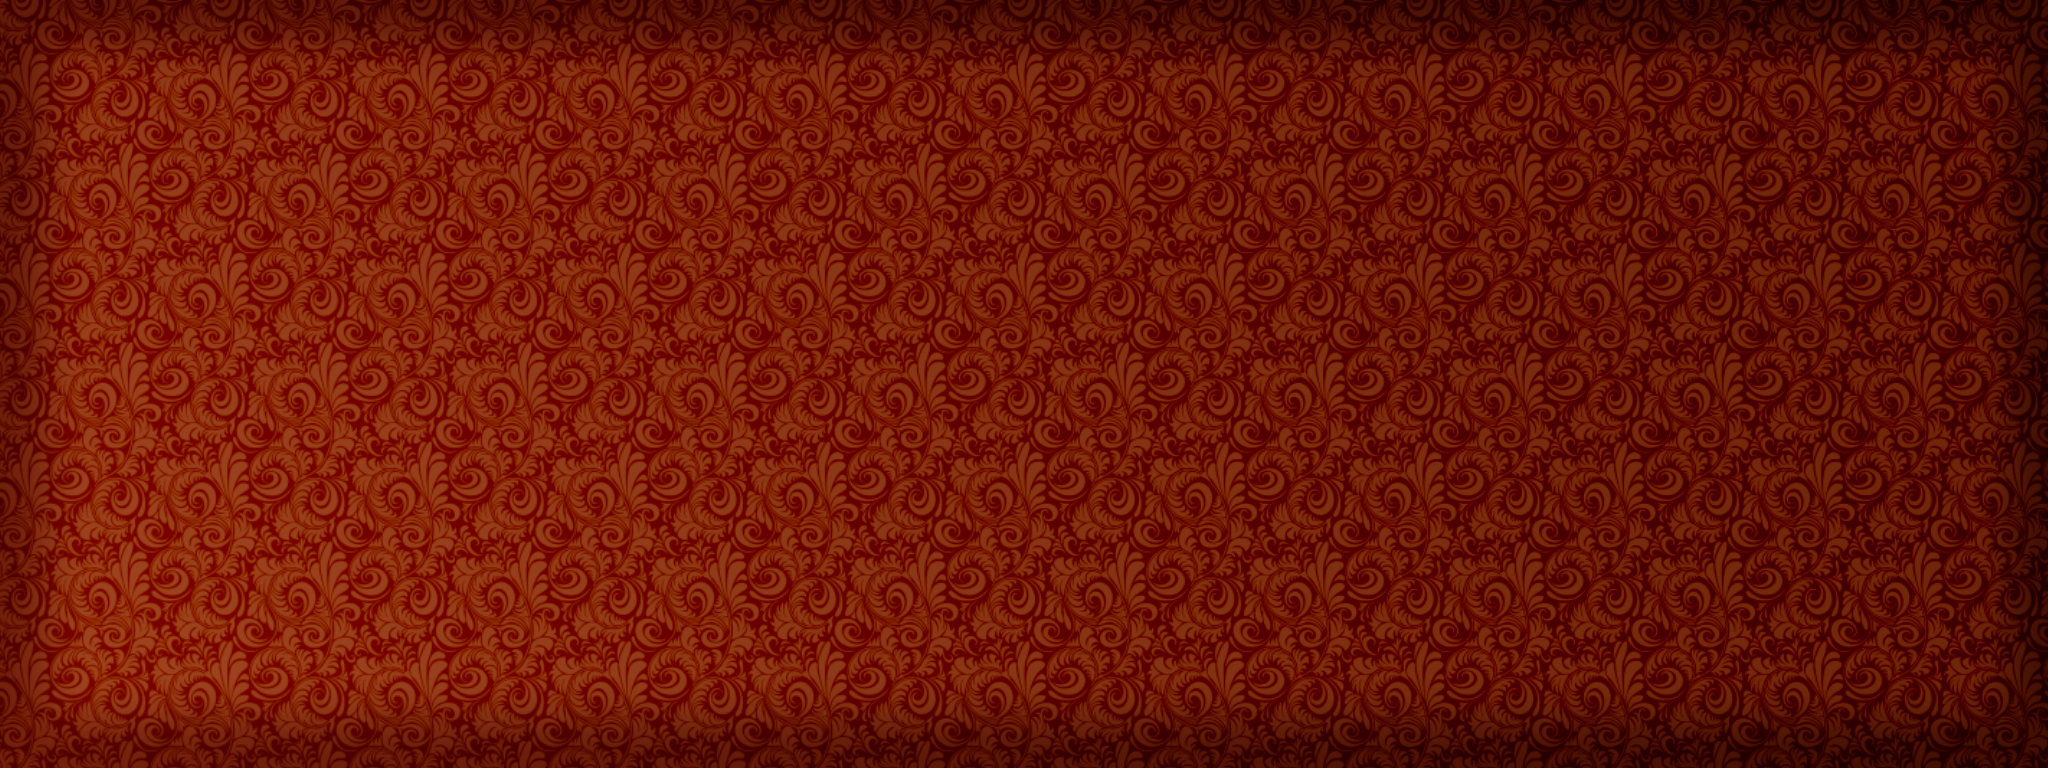 Victorian wallpaper by fewa1982 on deviantart for Victorian wallpaper